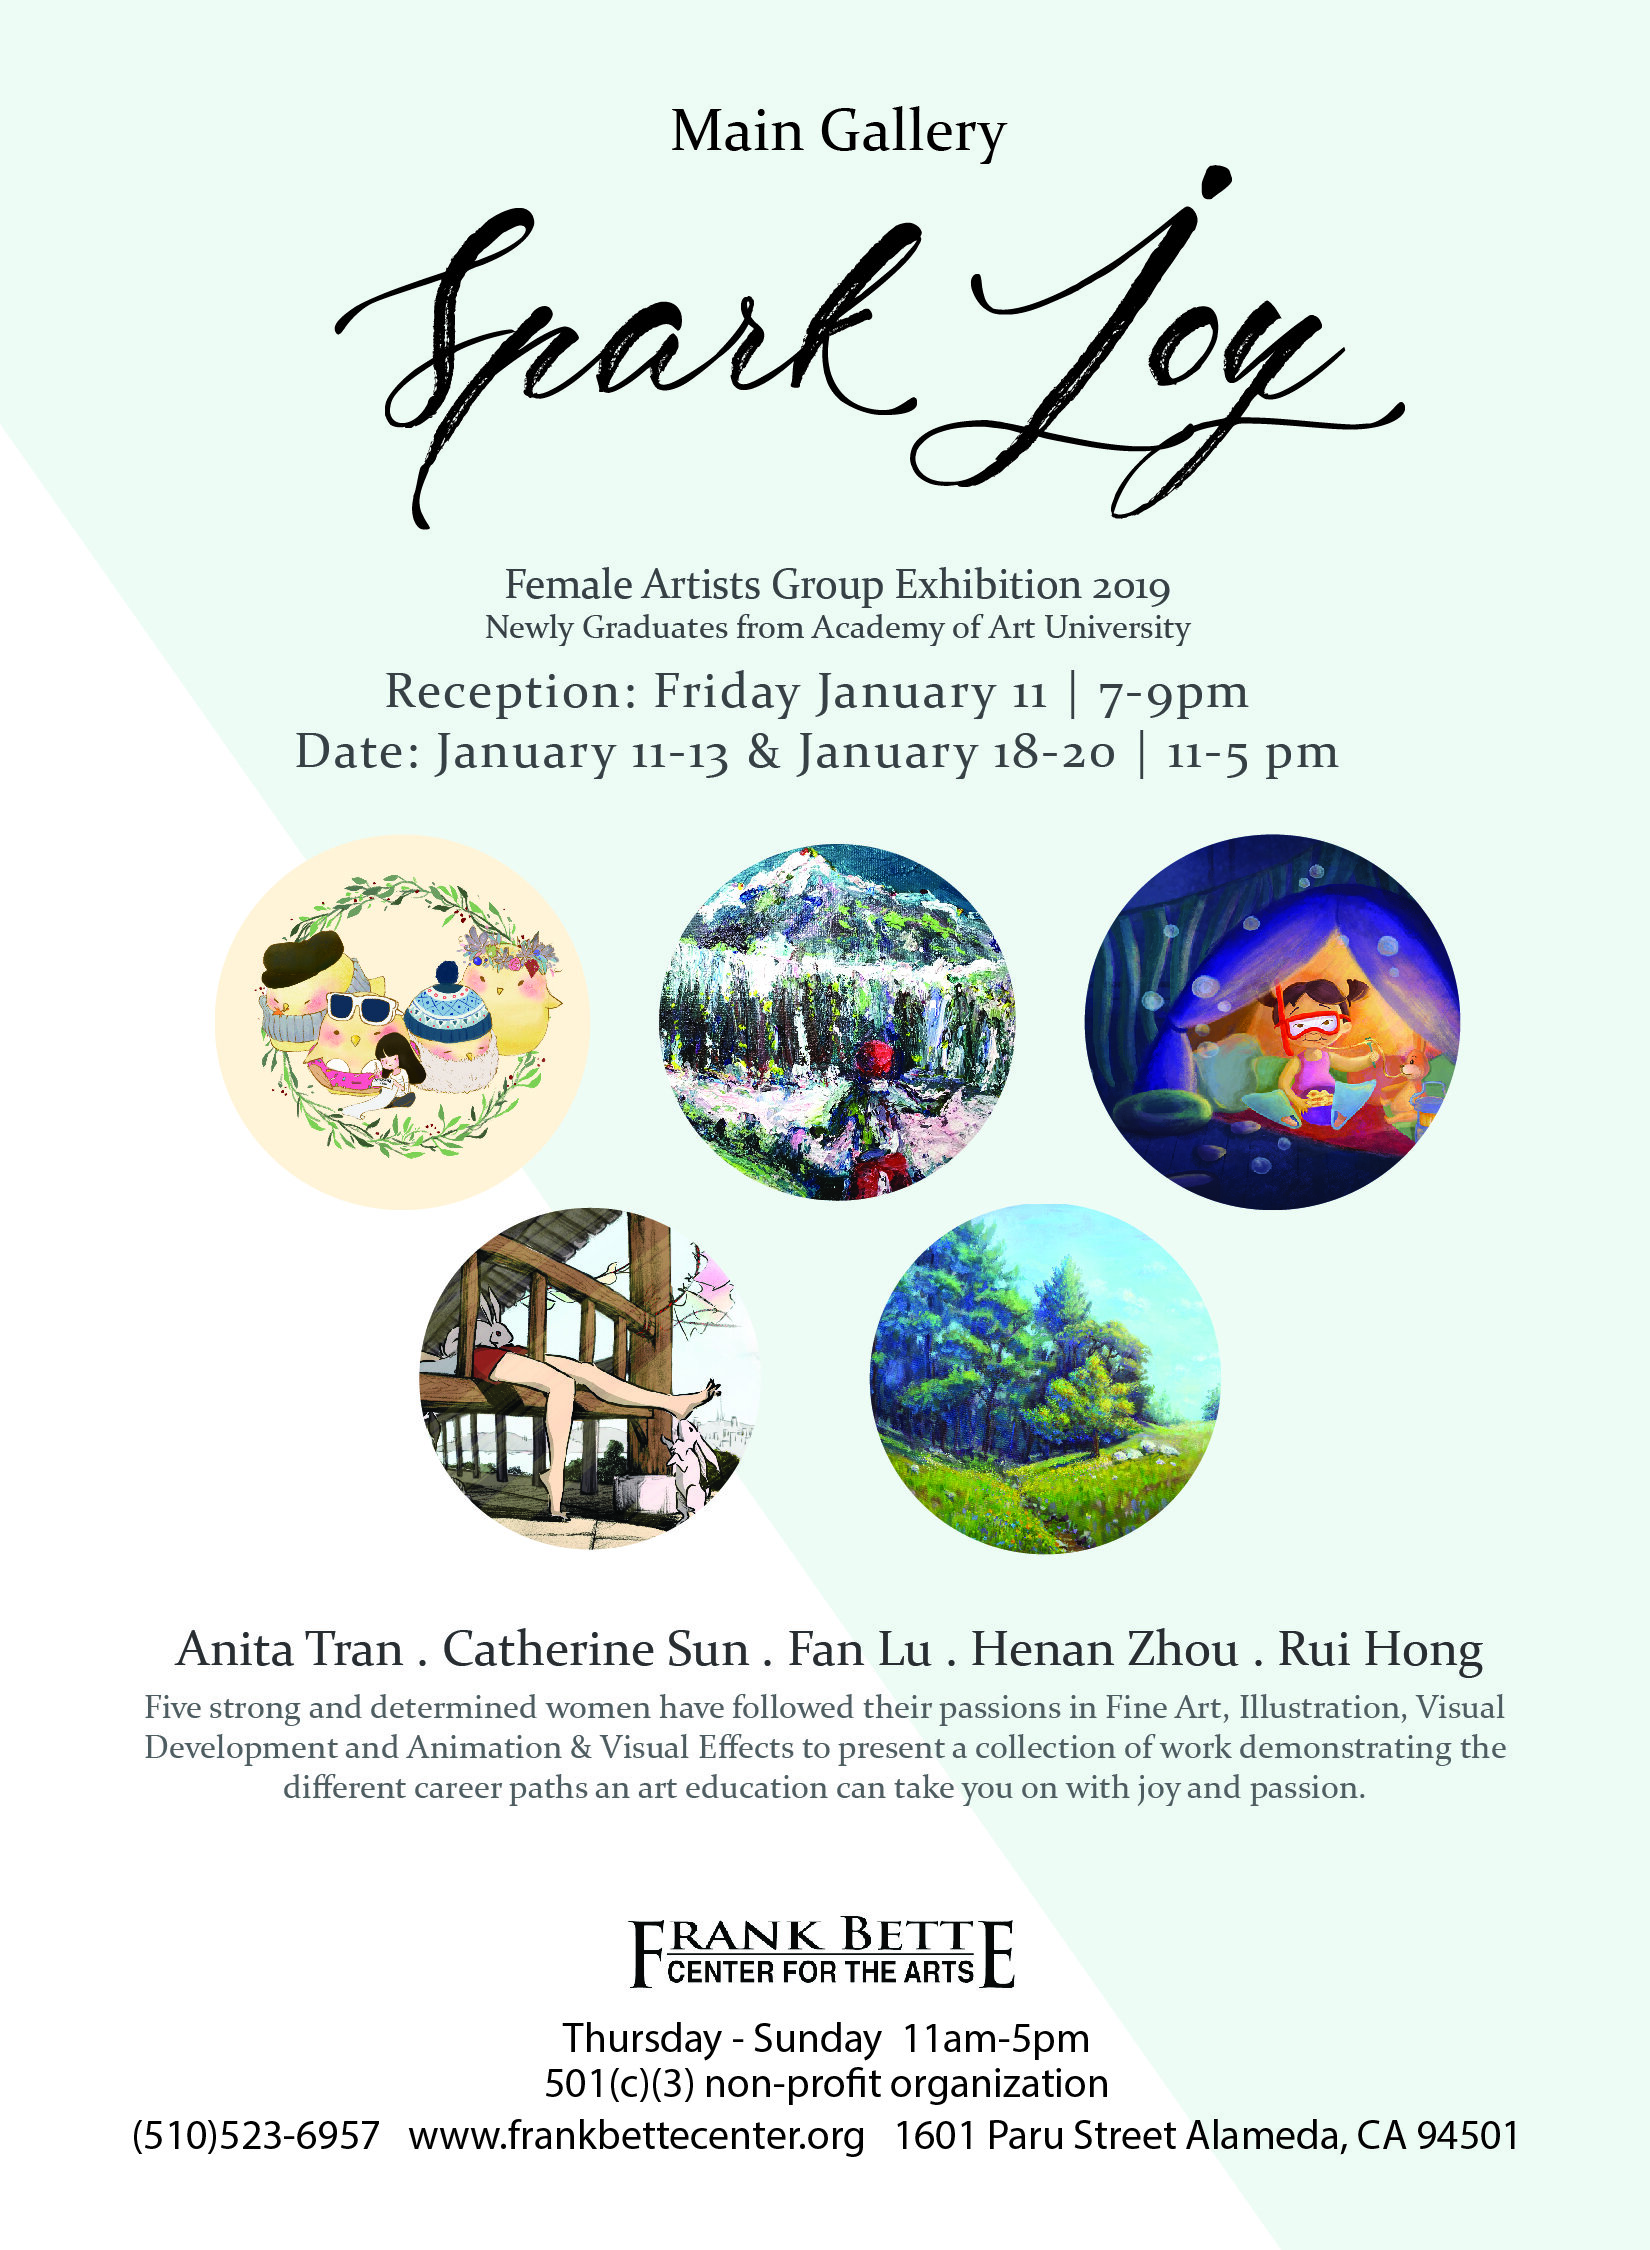 Female Artists Group Exhibition - Exhibition organized by Fan Lu